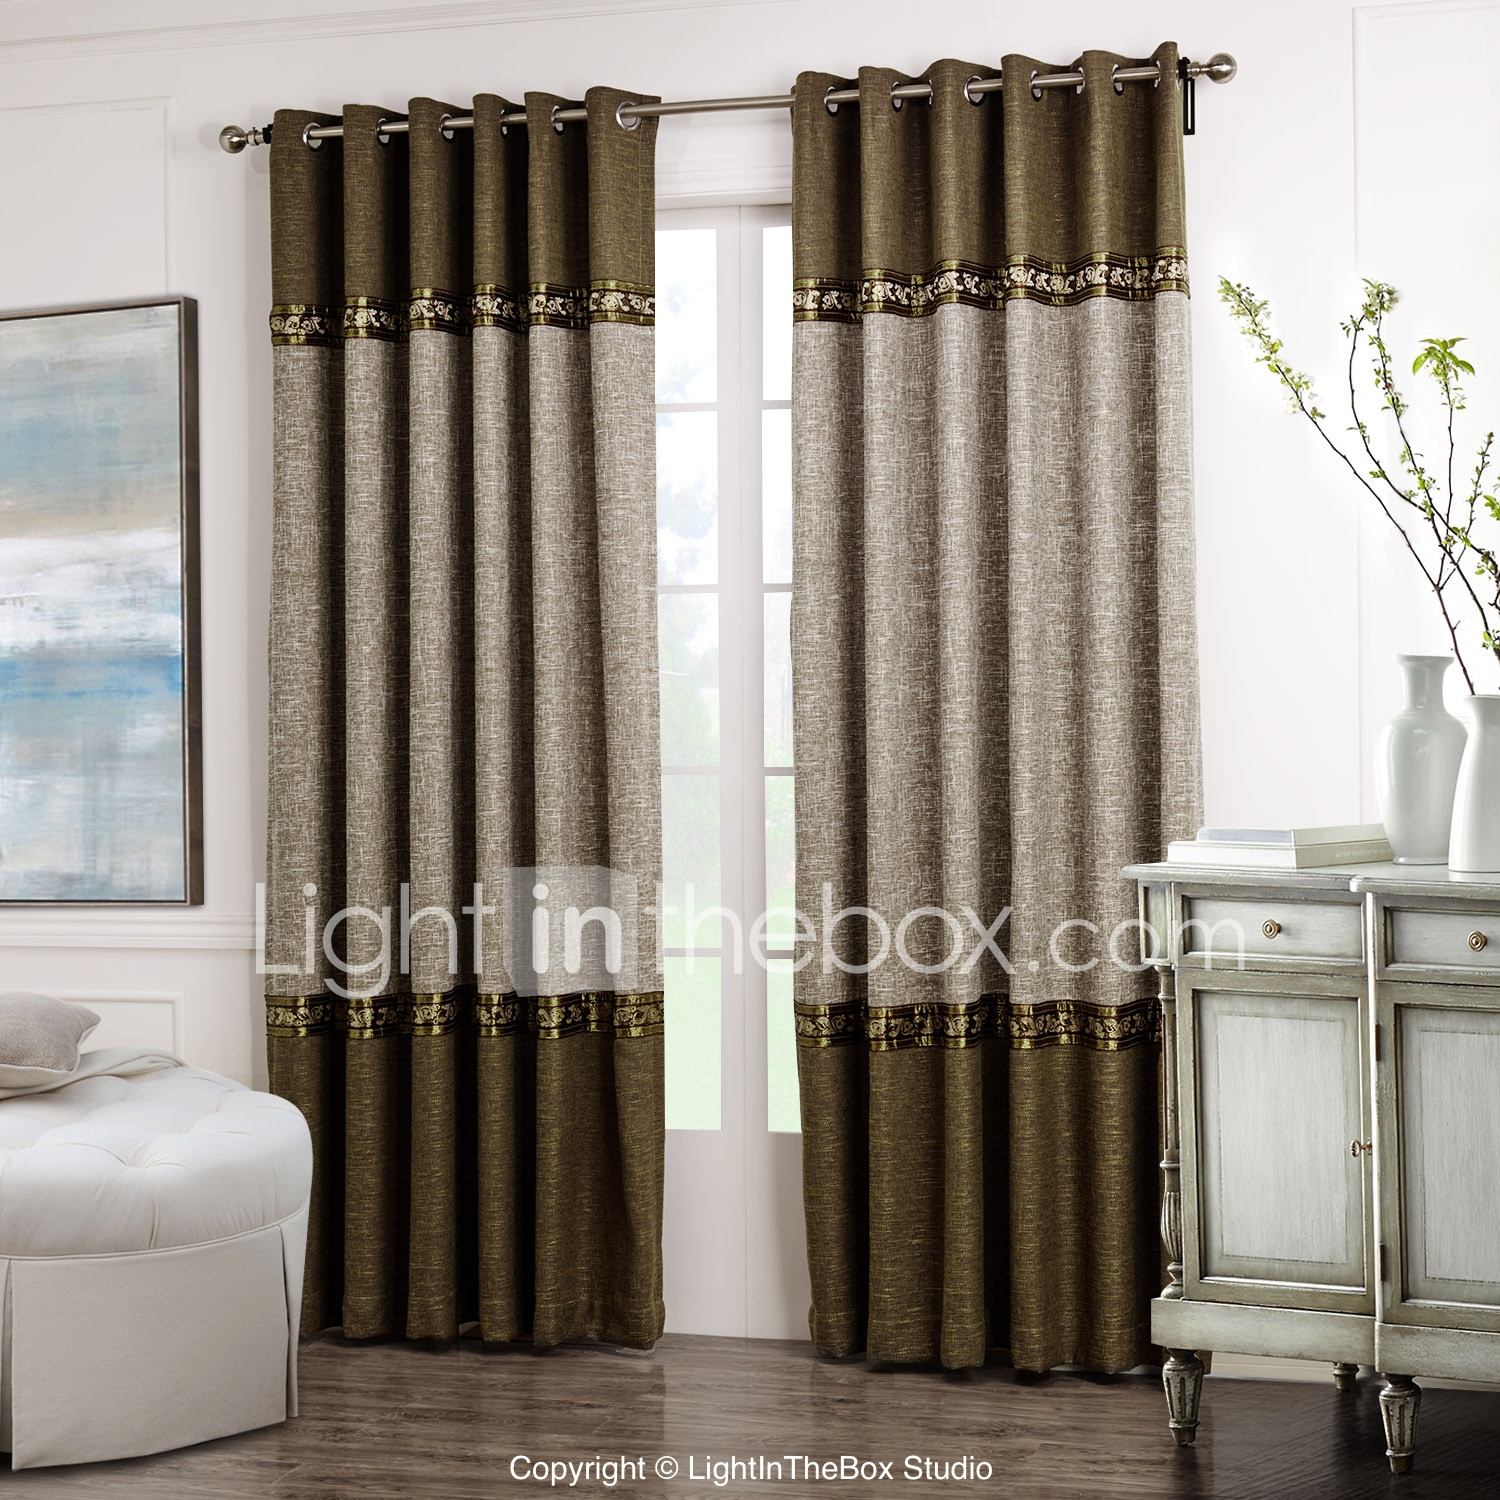 Cheap Curtains Drapes Online Curtains Drapes For 2017 Inside Dark Grey Sheer Curtains (Image 4 of 25)